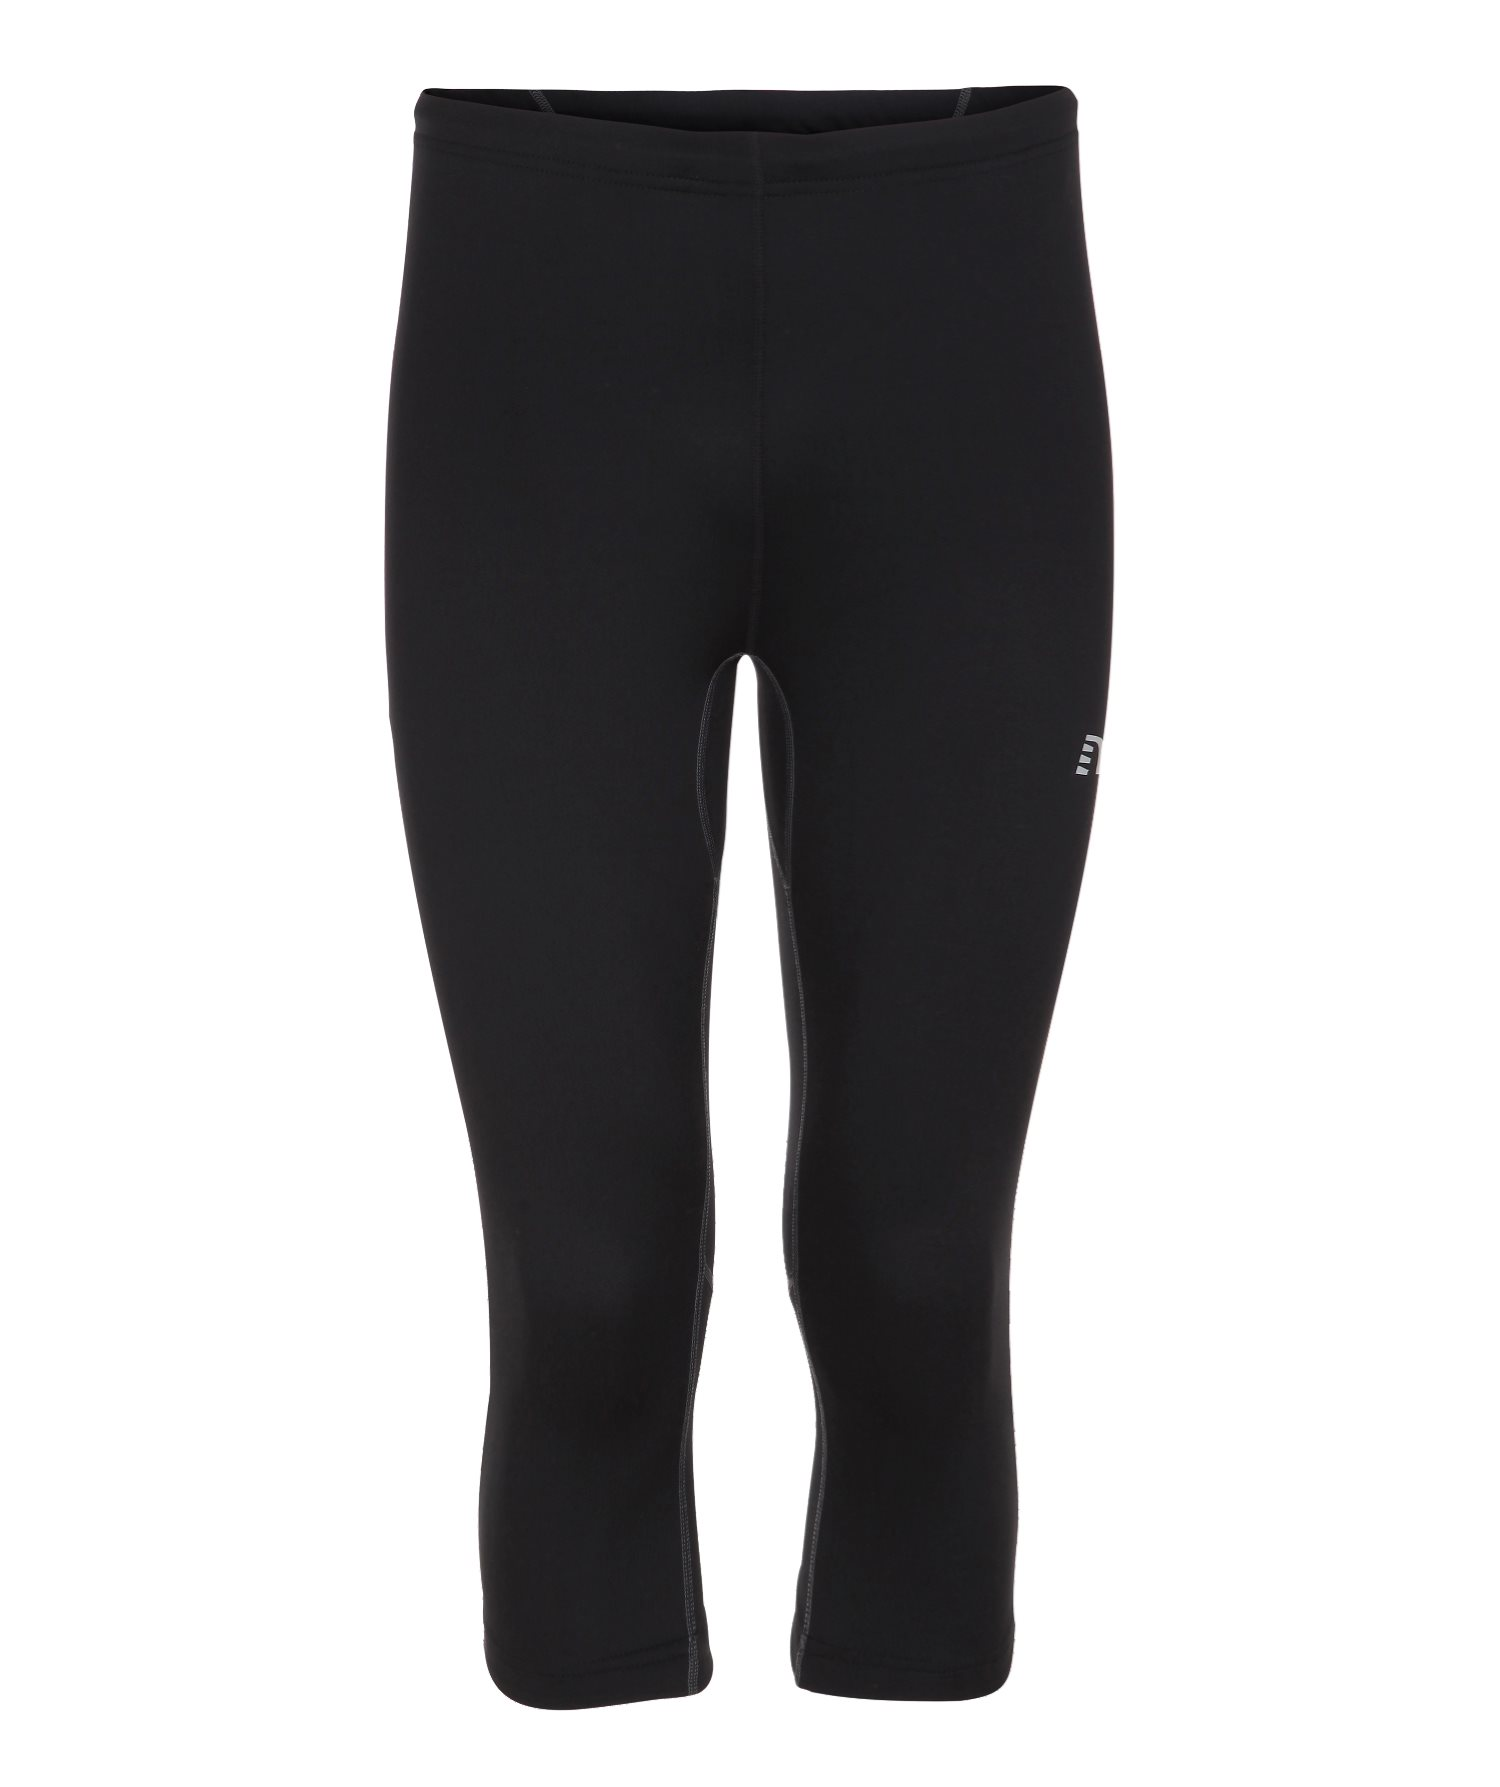 Base dry'n comfort Knee Tights Kinder